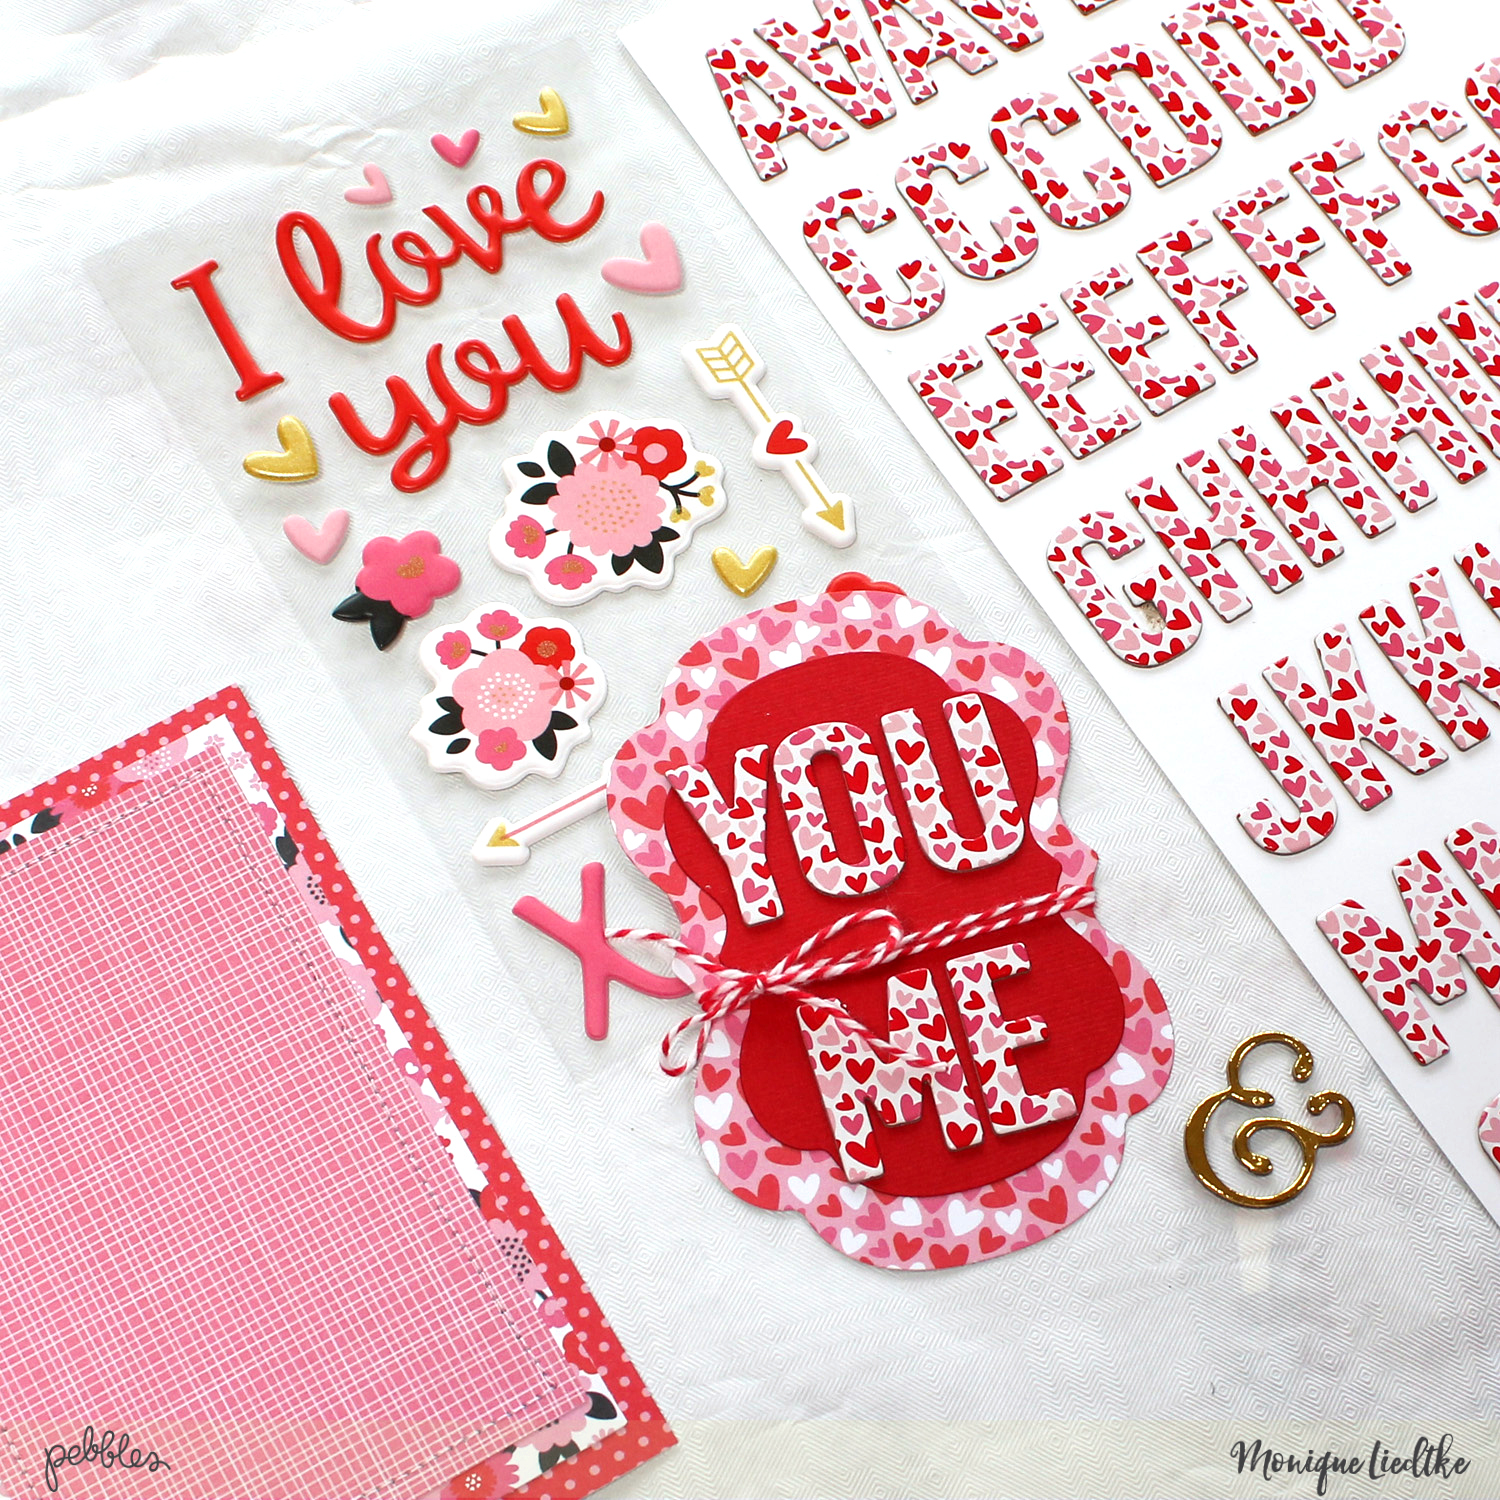 Valentines Home Decor made by @MoniqueLiedtke using the #MyFunnyValentine collection from @PebblesInc.